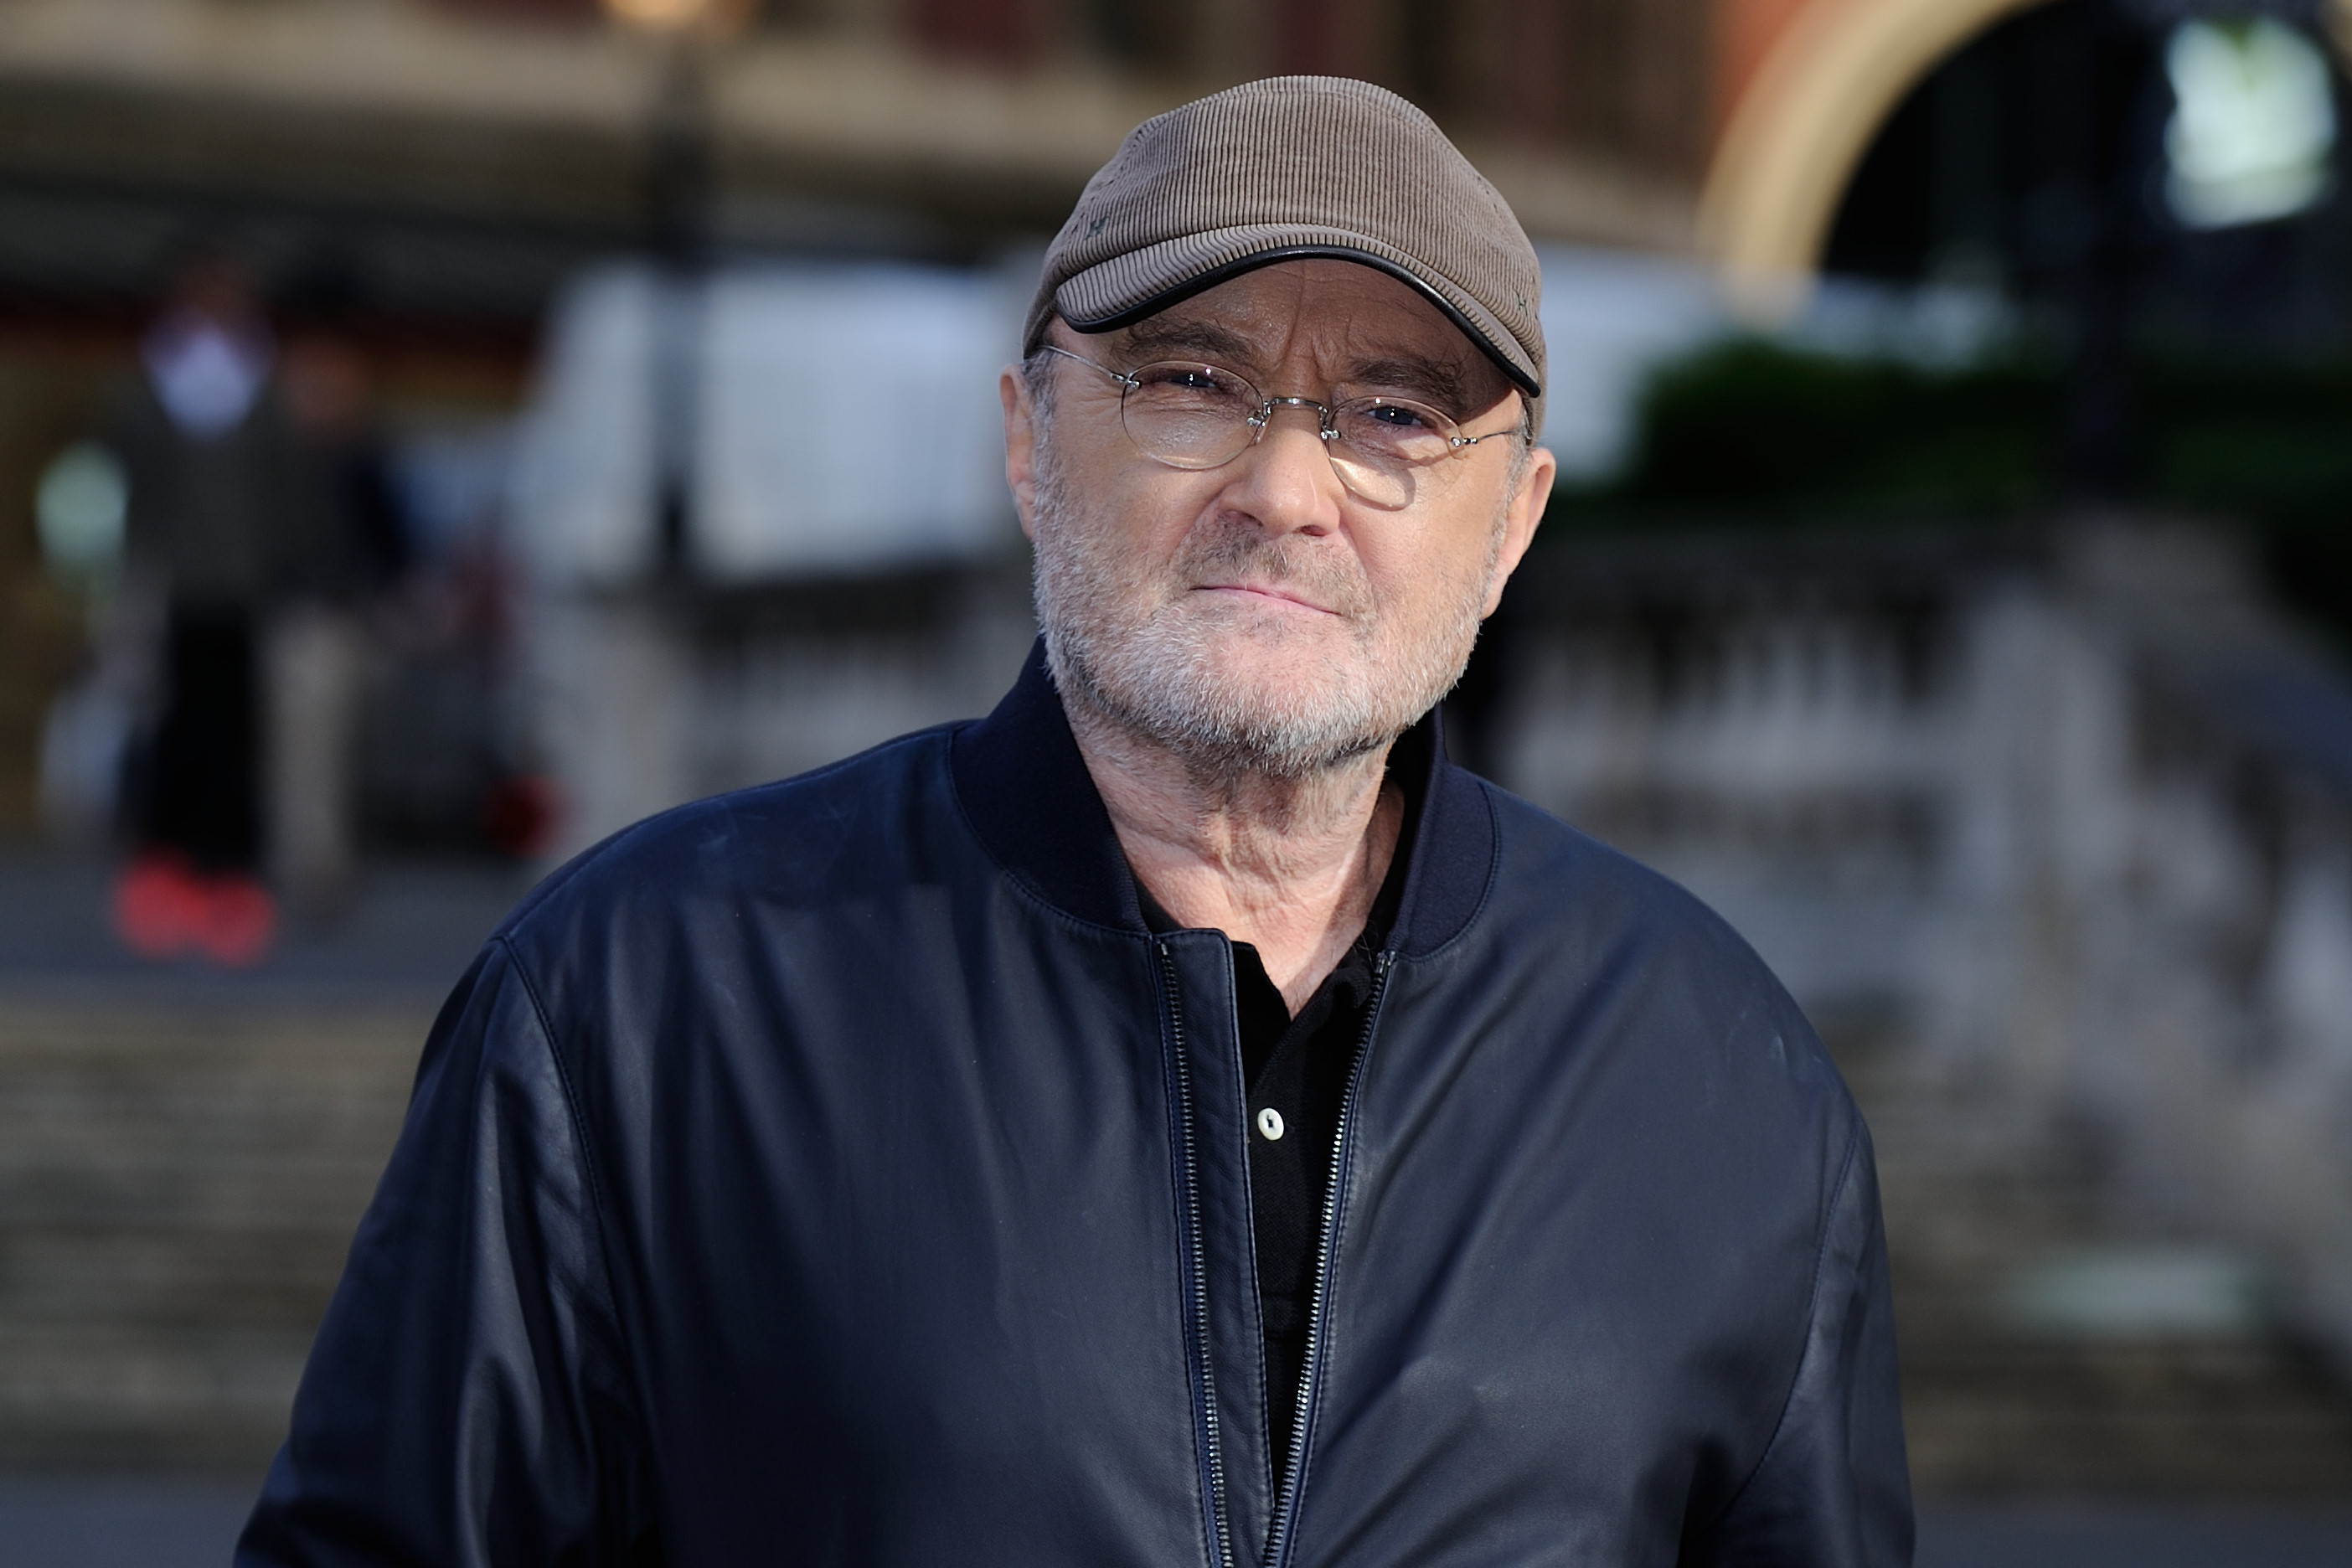 Phil Collins attending a photocall to announce his 'Not Dead Yet' tour at the Royal Albert Hall in London, England on October 17, 2016. Photo by Aurore Marechal/Sipa USA